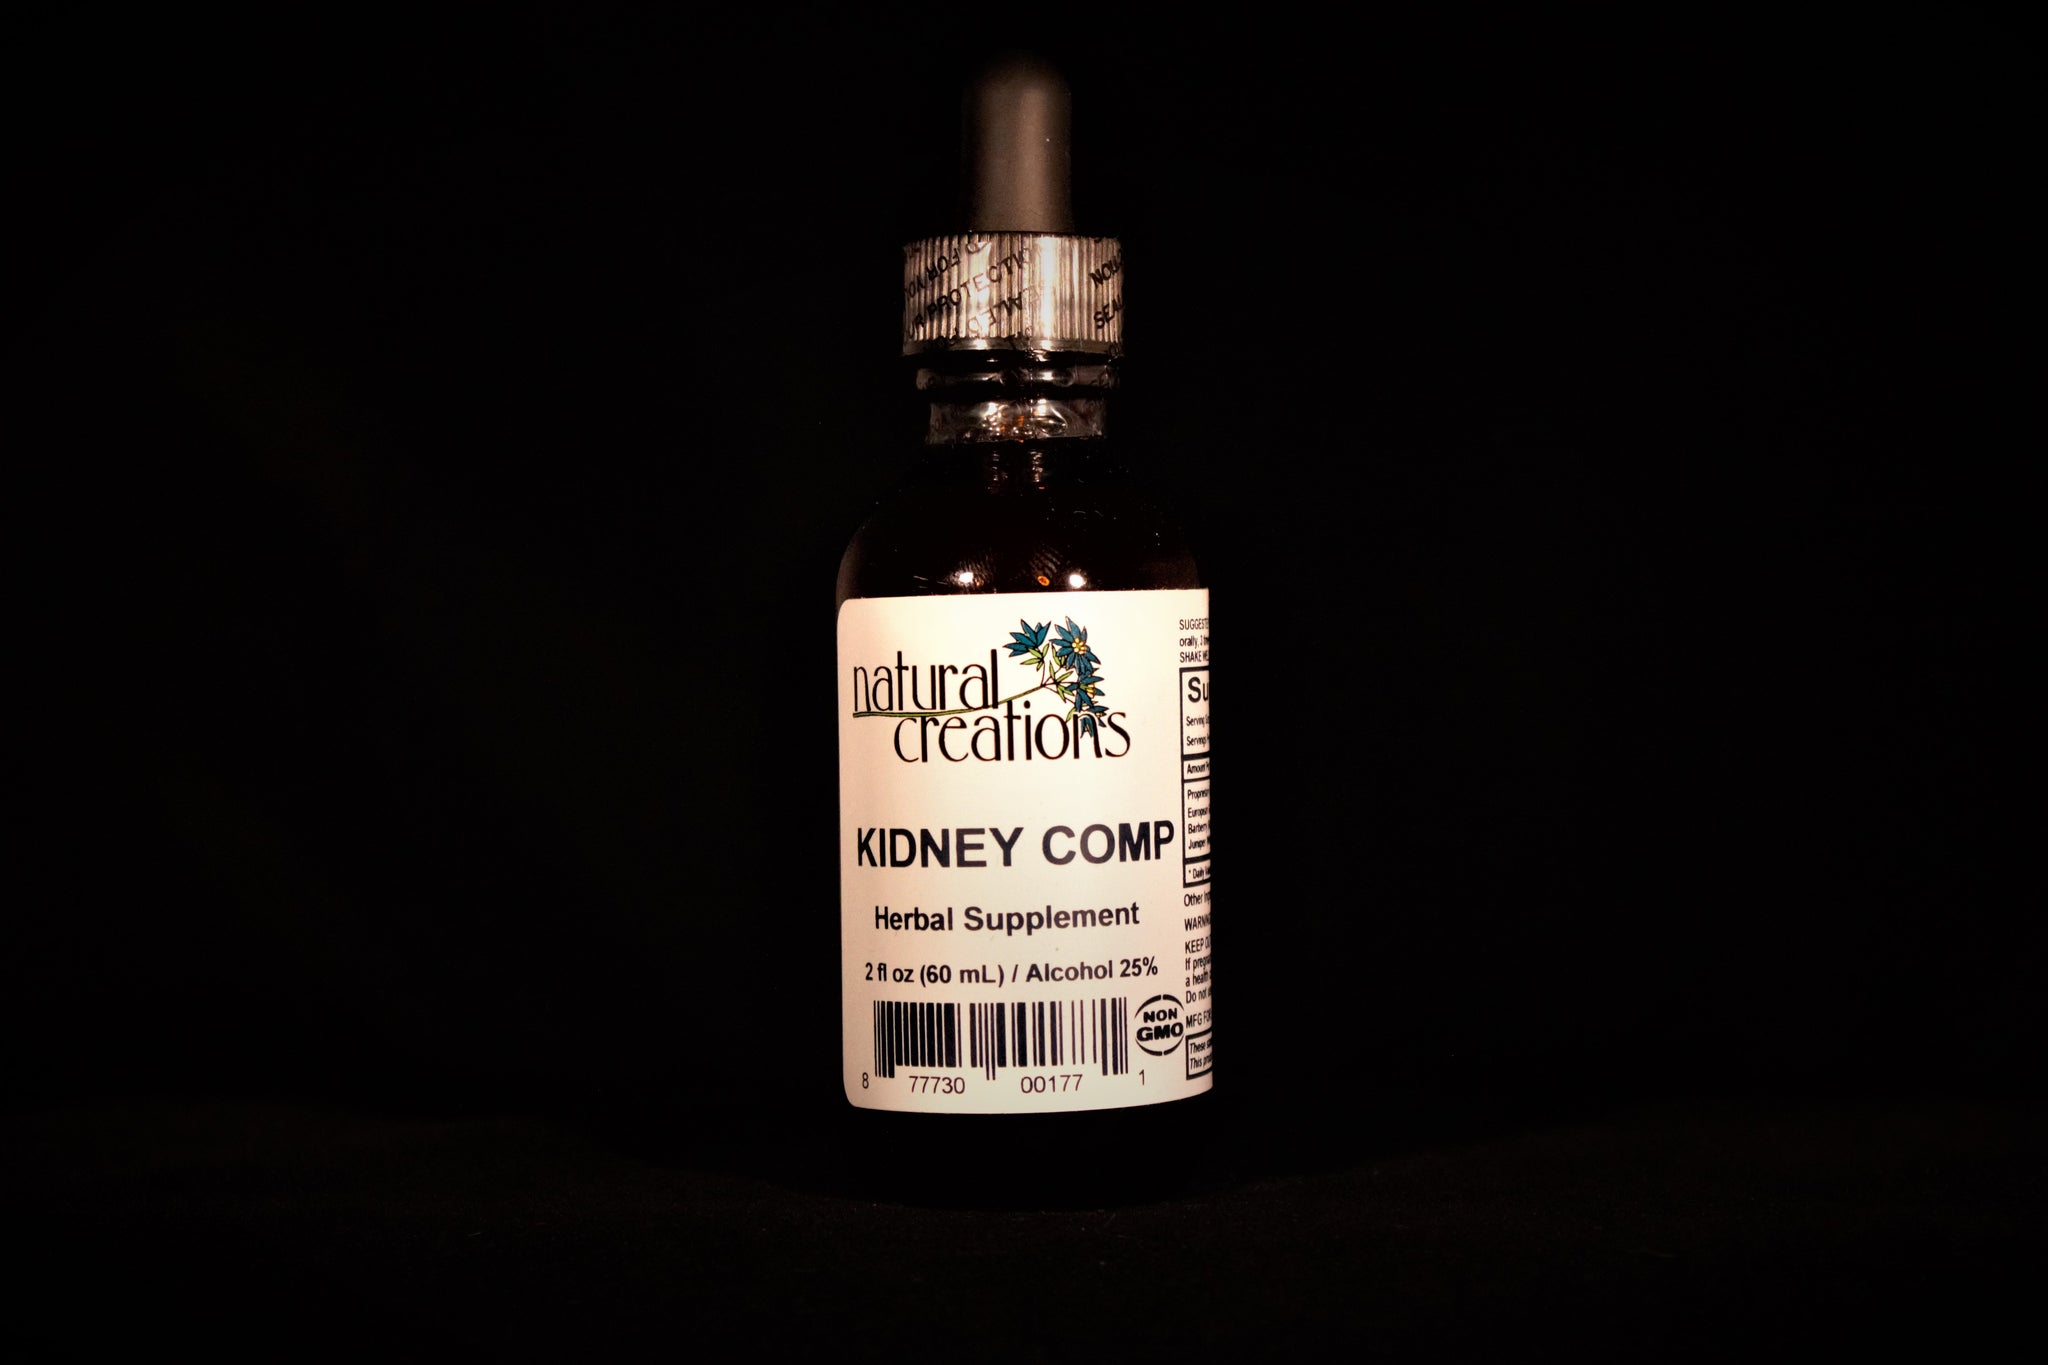 Kidney Comp 2oz